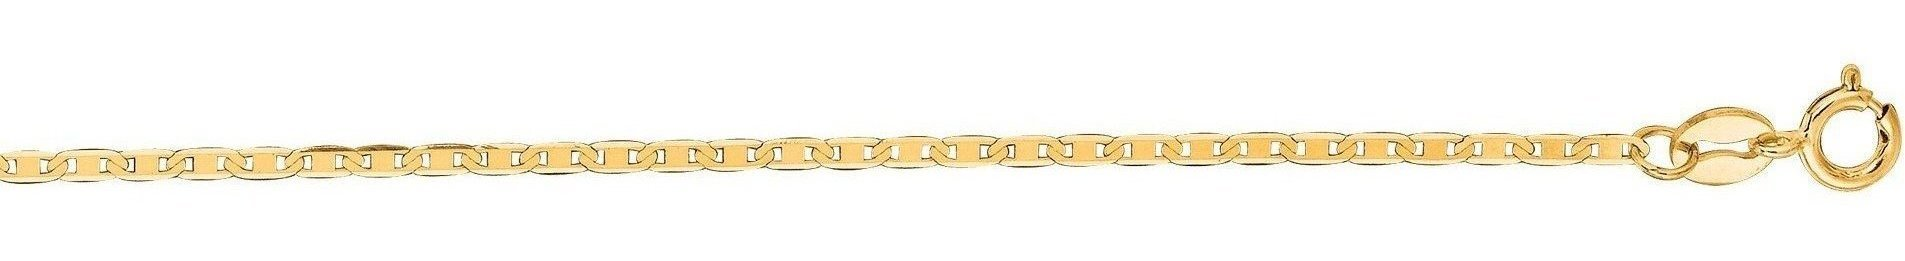 "18"" 14K Yellow Gold 1.2mm (0.05"") Polished Diamond Cut Marina Link Chain w/ Spring Ring Clasp"